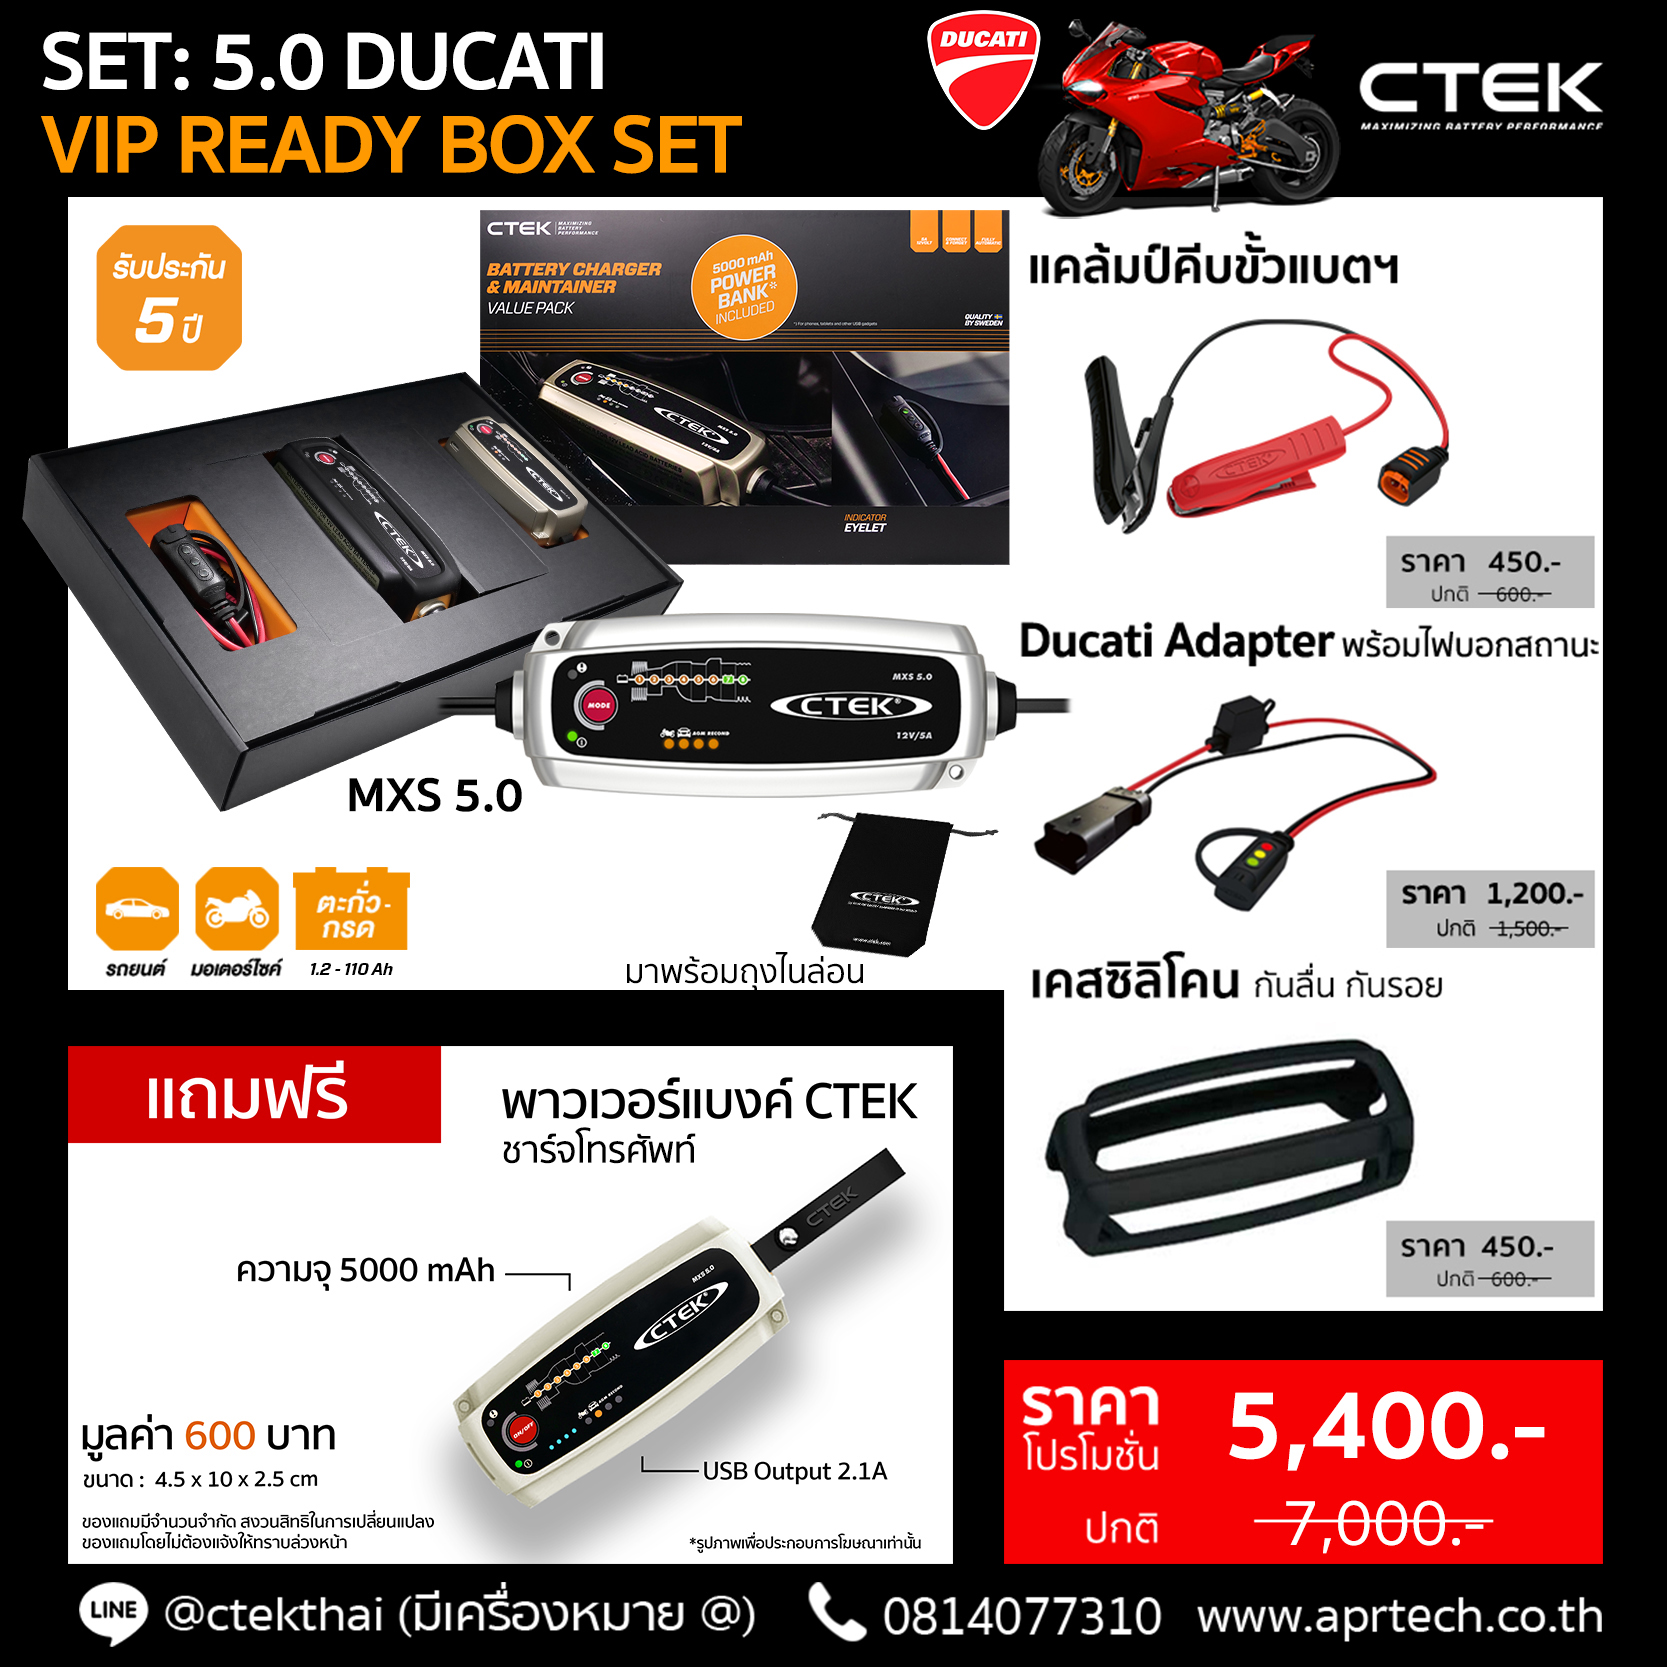 SET MXS 5.0 Ducati VIP READY BOX SET (CTEK MXS 5.0 + Ducati DDA Adapter + Bumper)